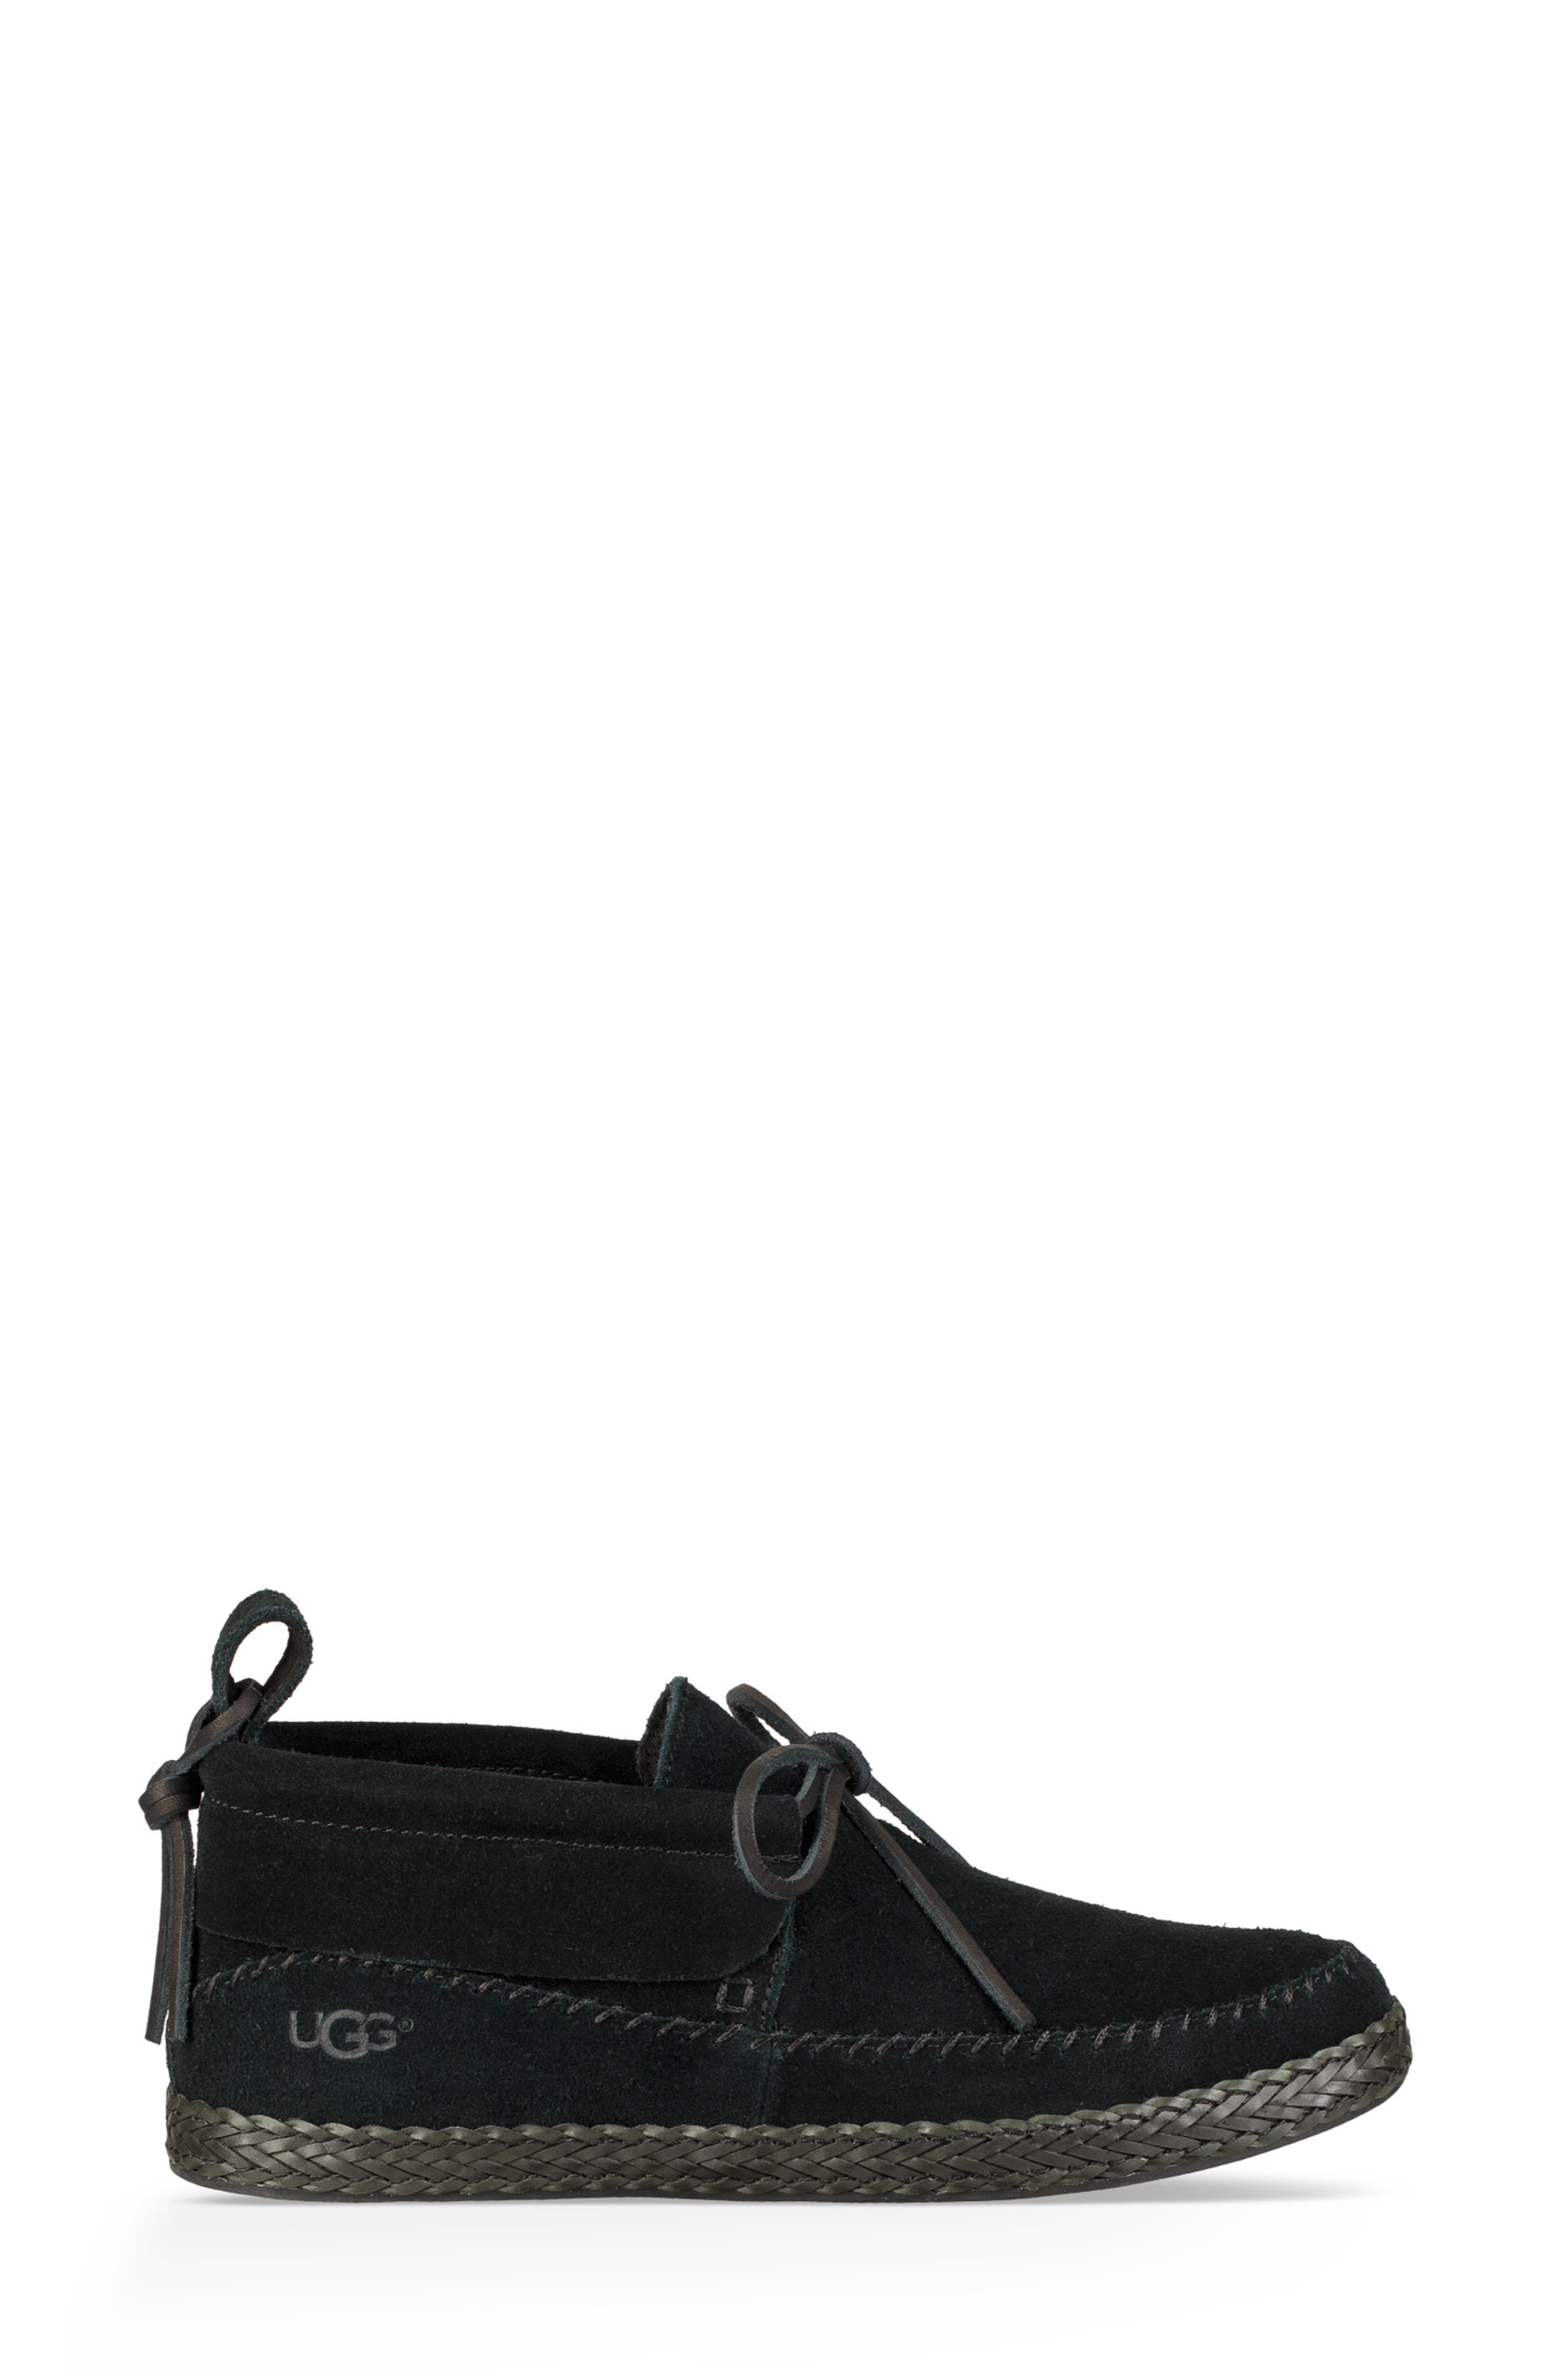 Woodlyn Moc Toe Bootie,                             Alternate thumbnail 3, color,                             BLACK LEATHER